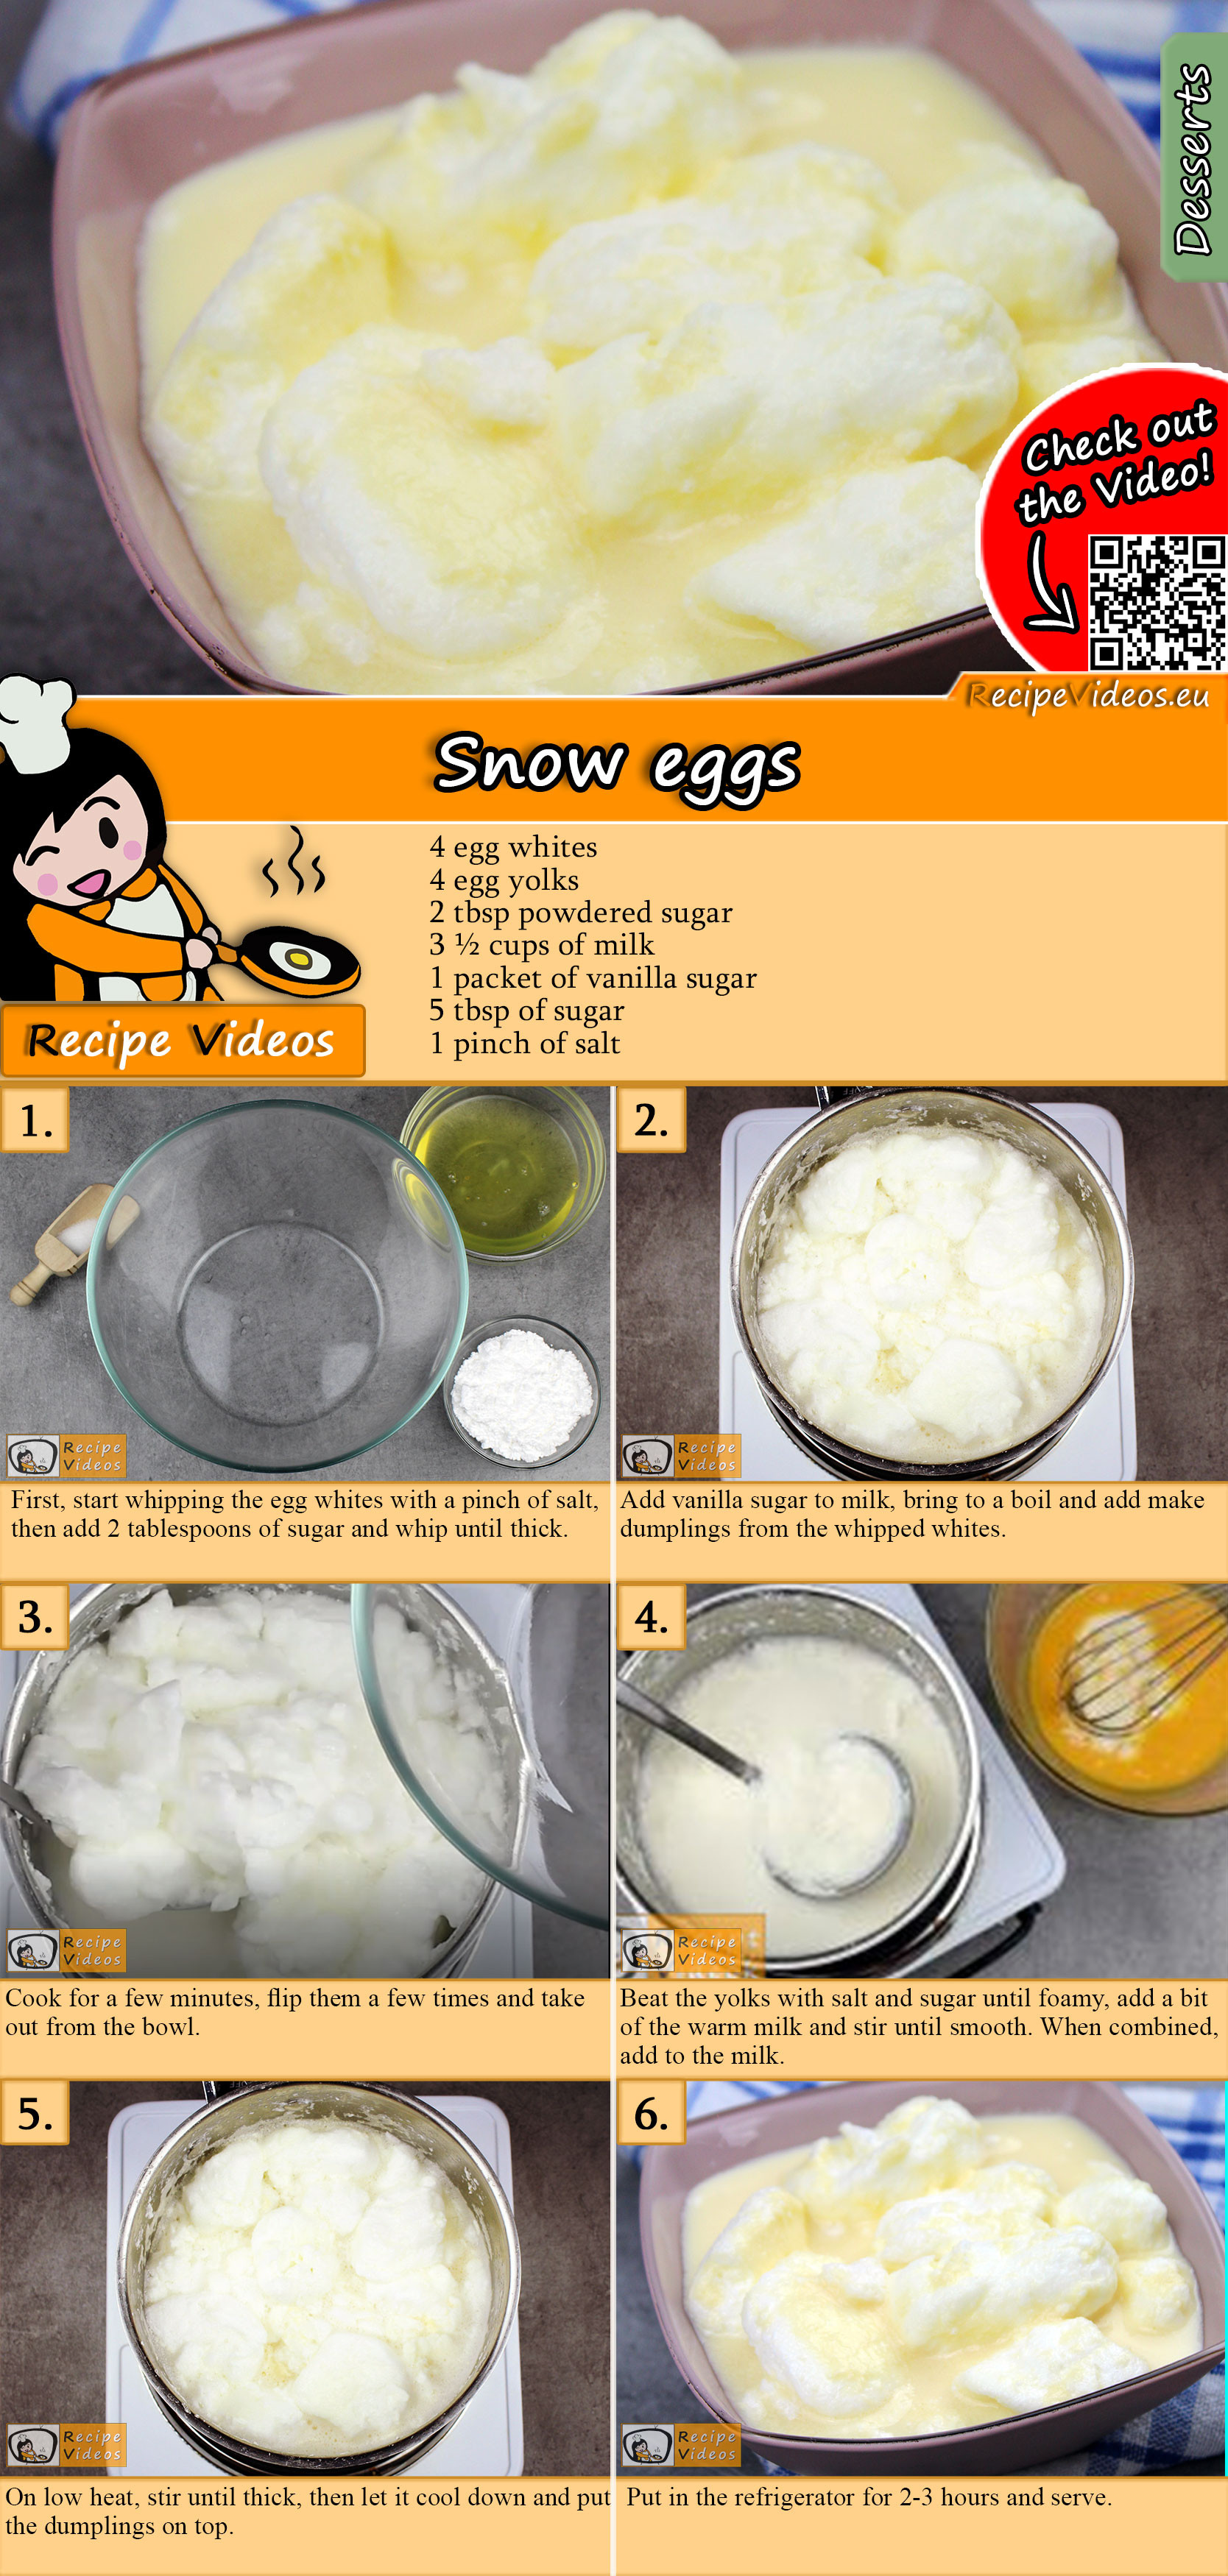 Snow eggs recipe with video